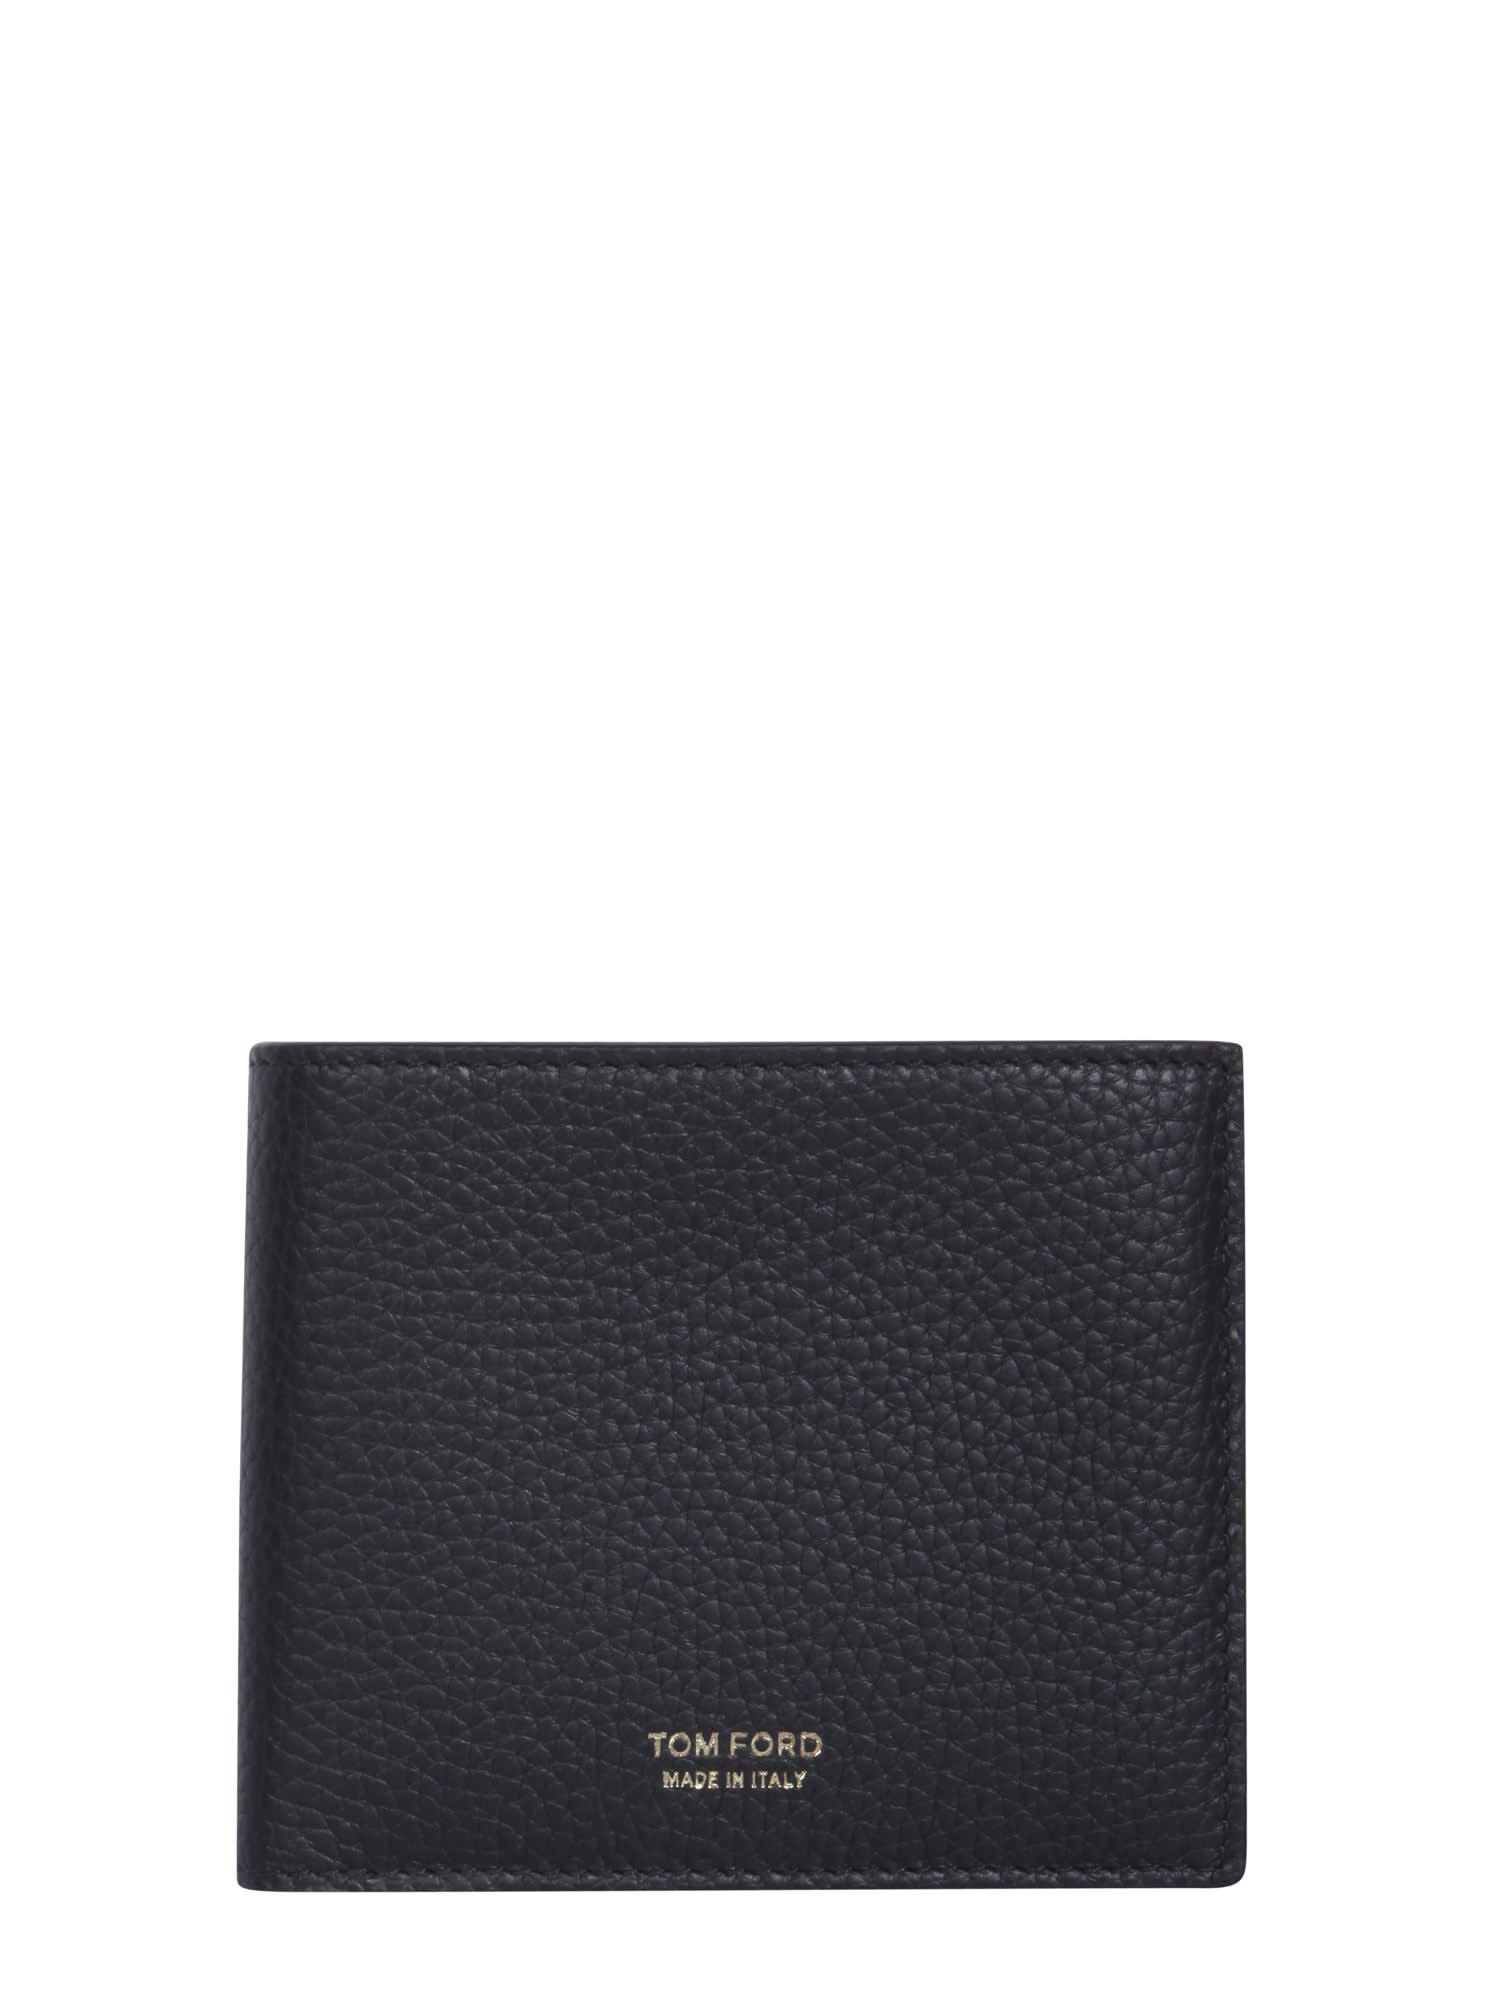 Tom Ford Leather Bifold Wallet